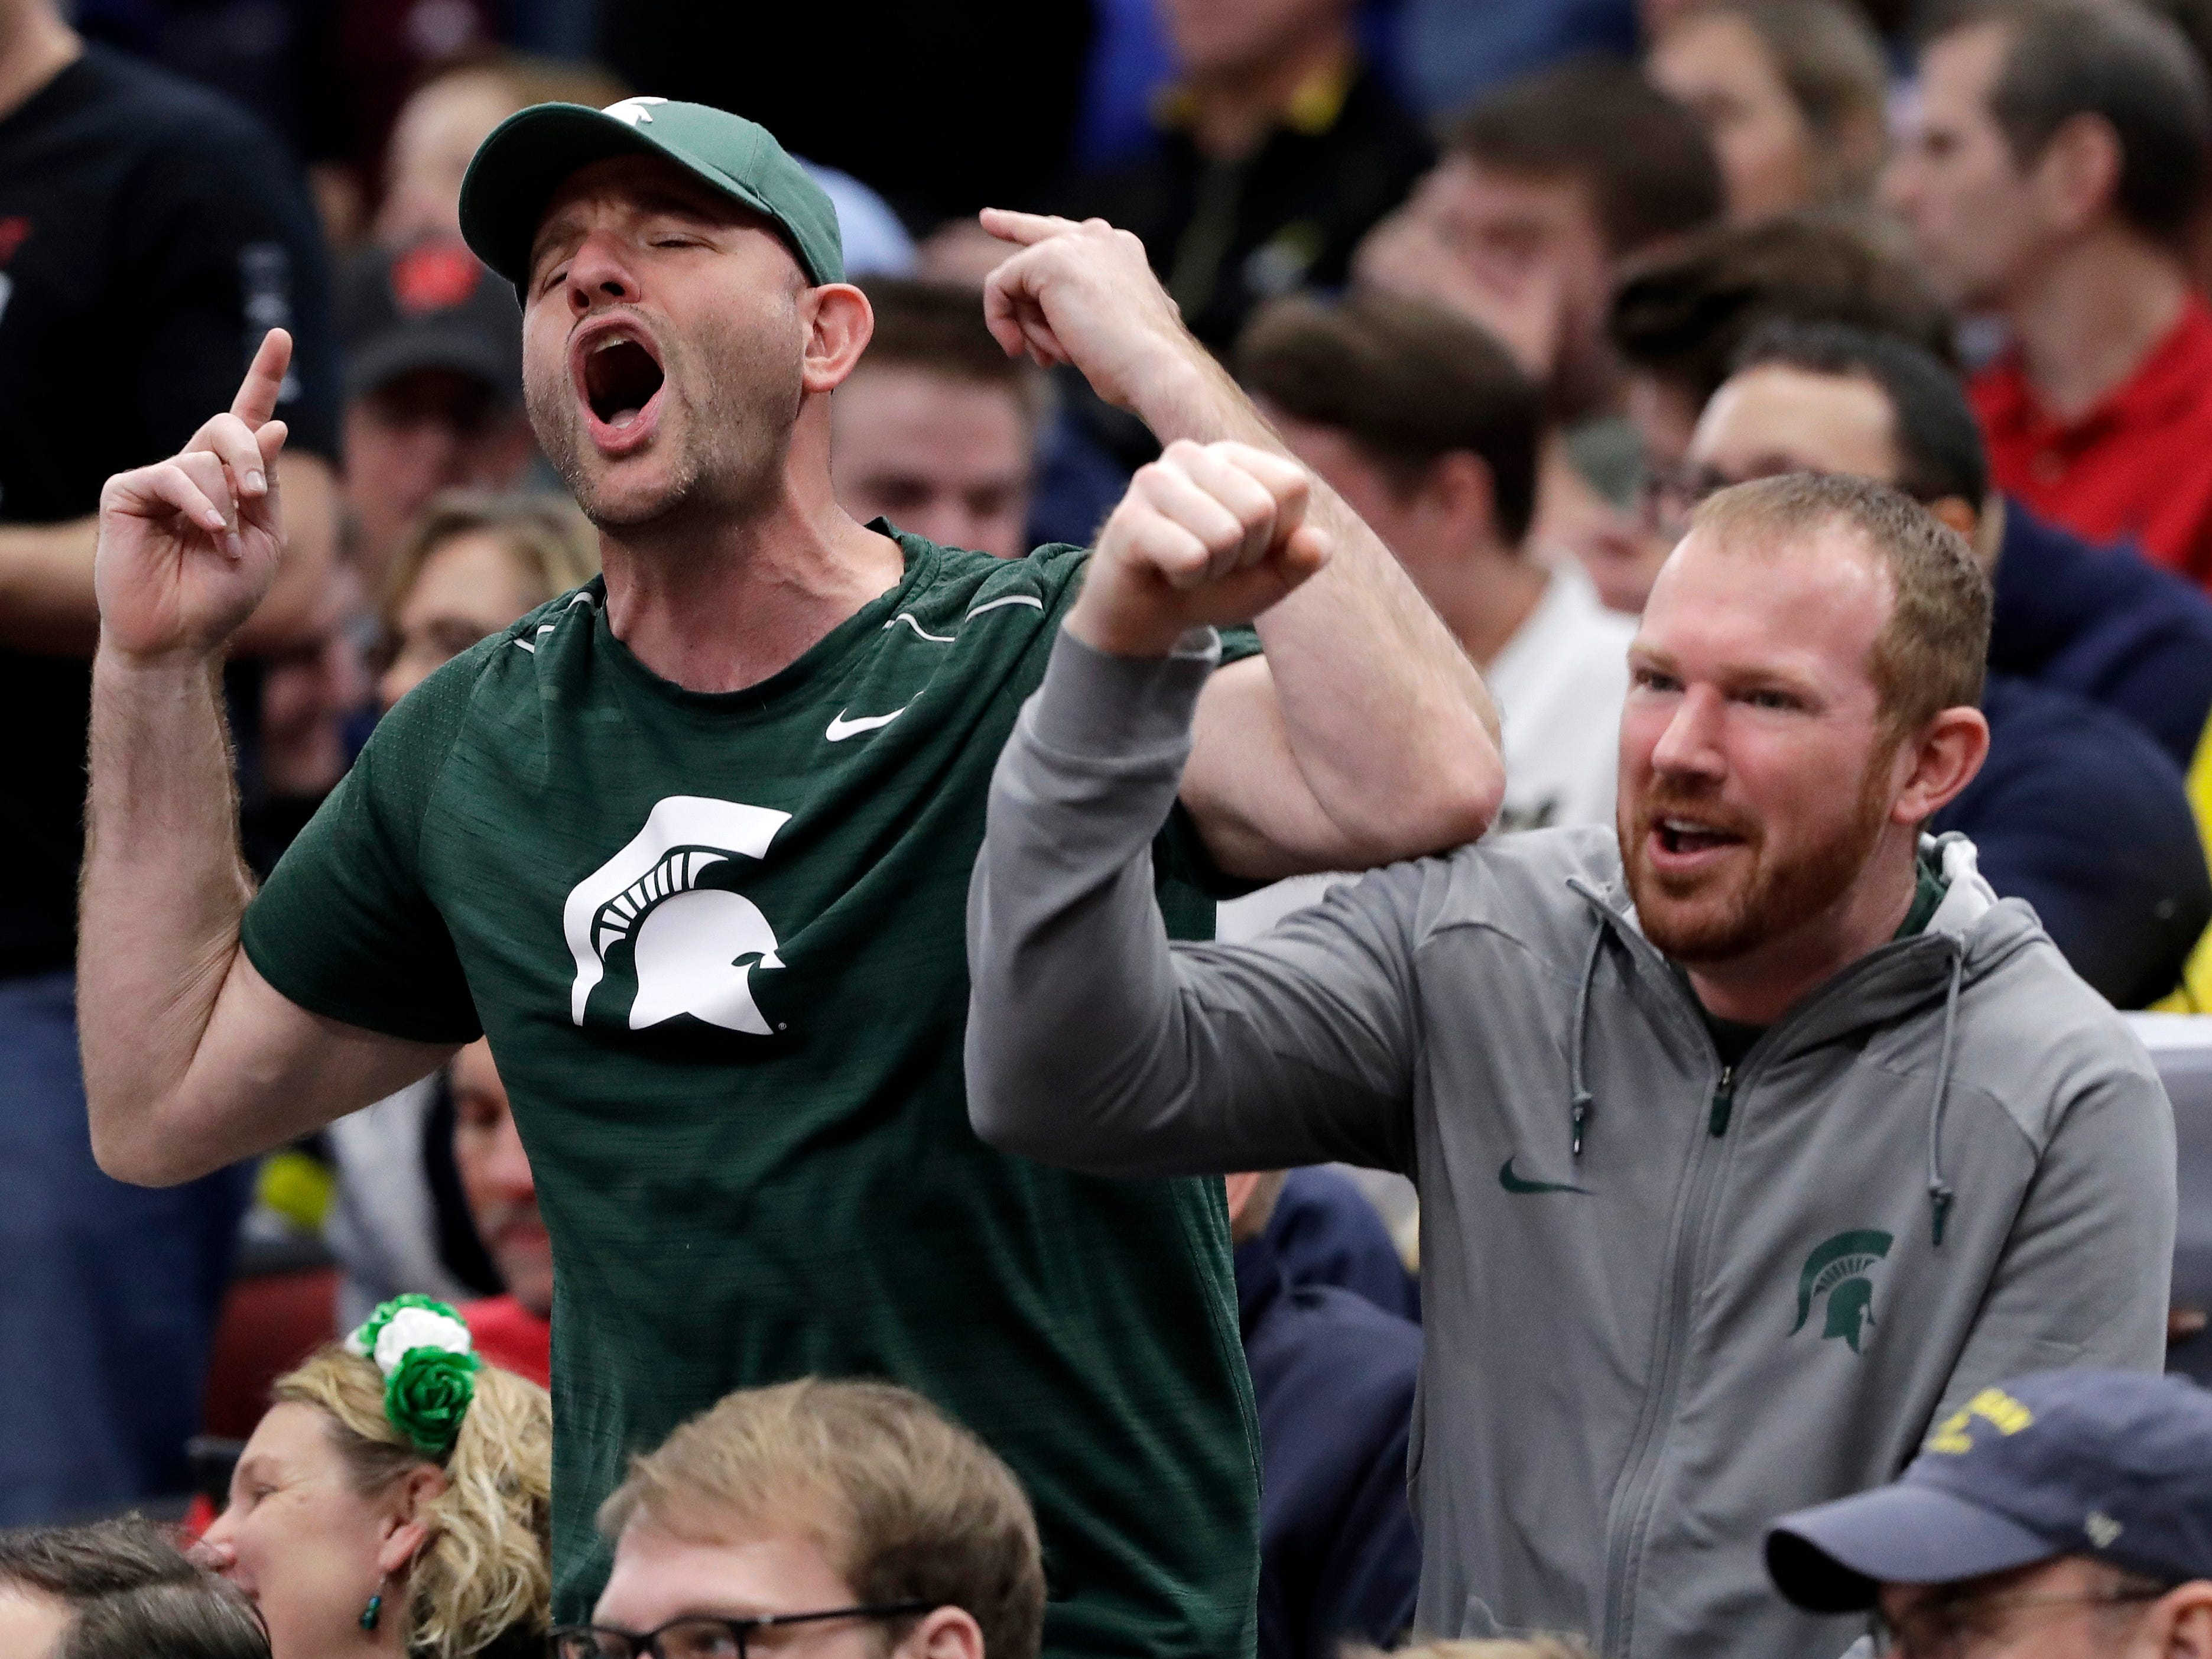 Michigan State fans cheer during the second half.